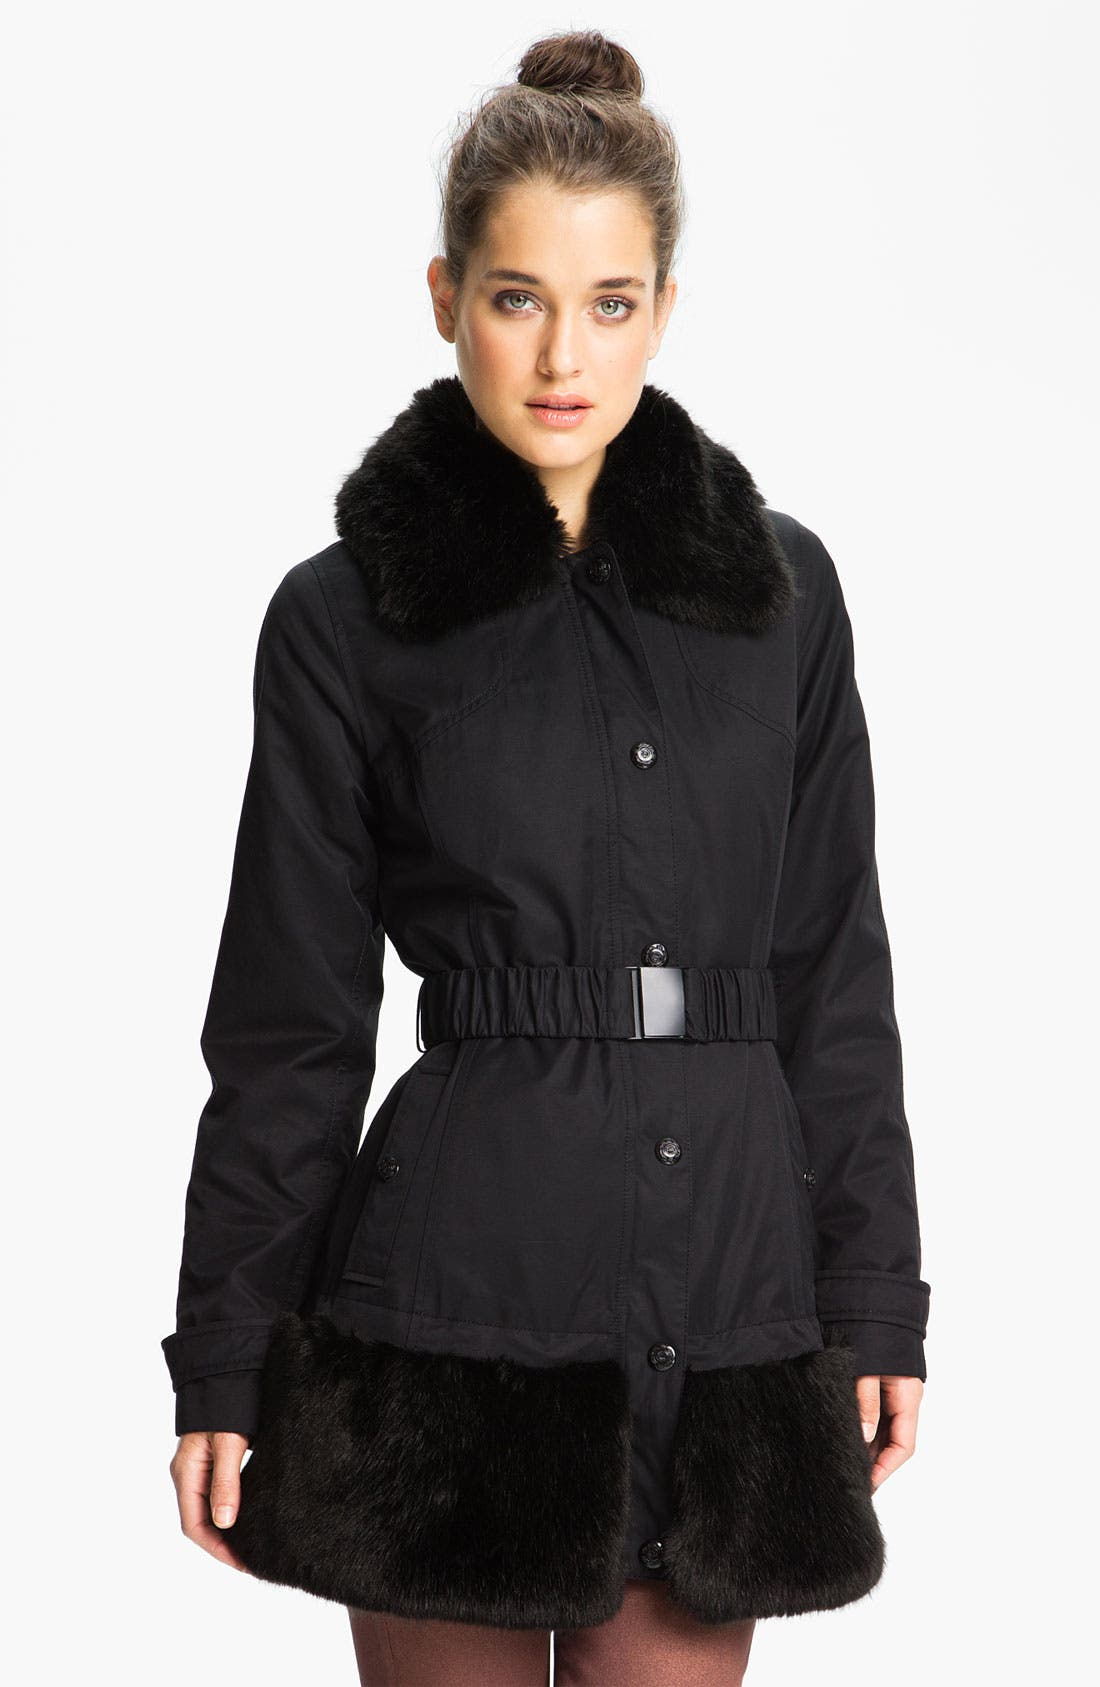 Alternate Image 1 Selected - Laundry by Shelli Segal Belted Coat with Detachable Faux Fur